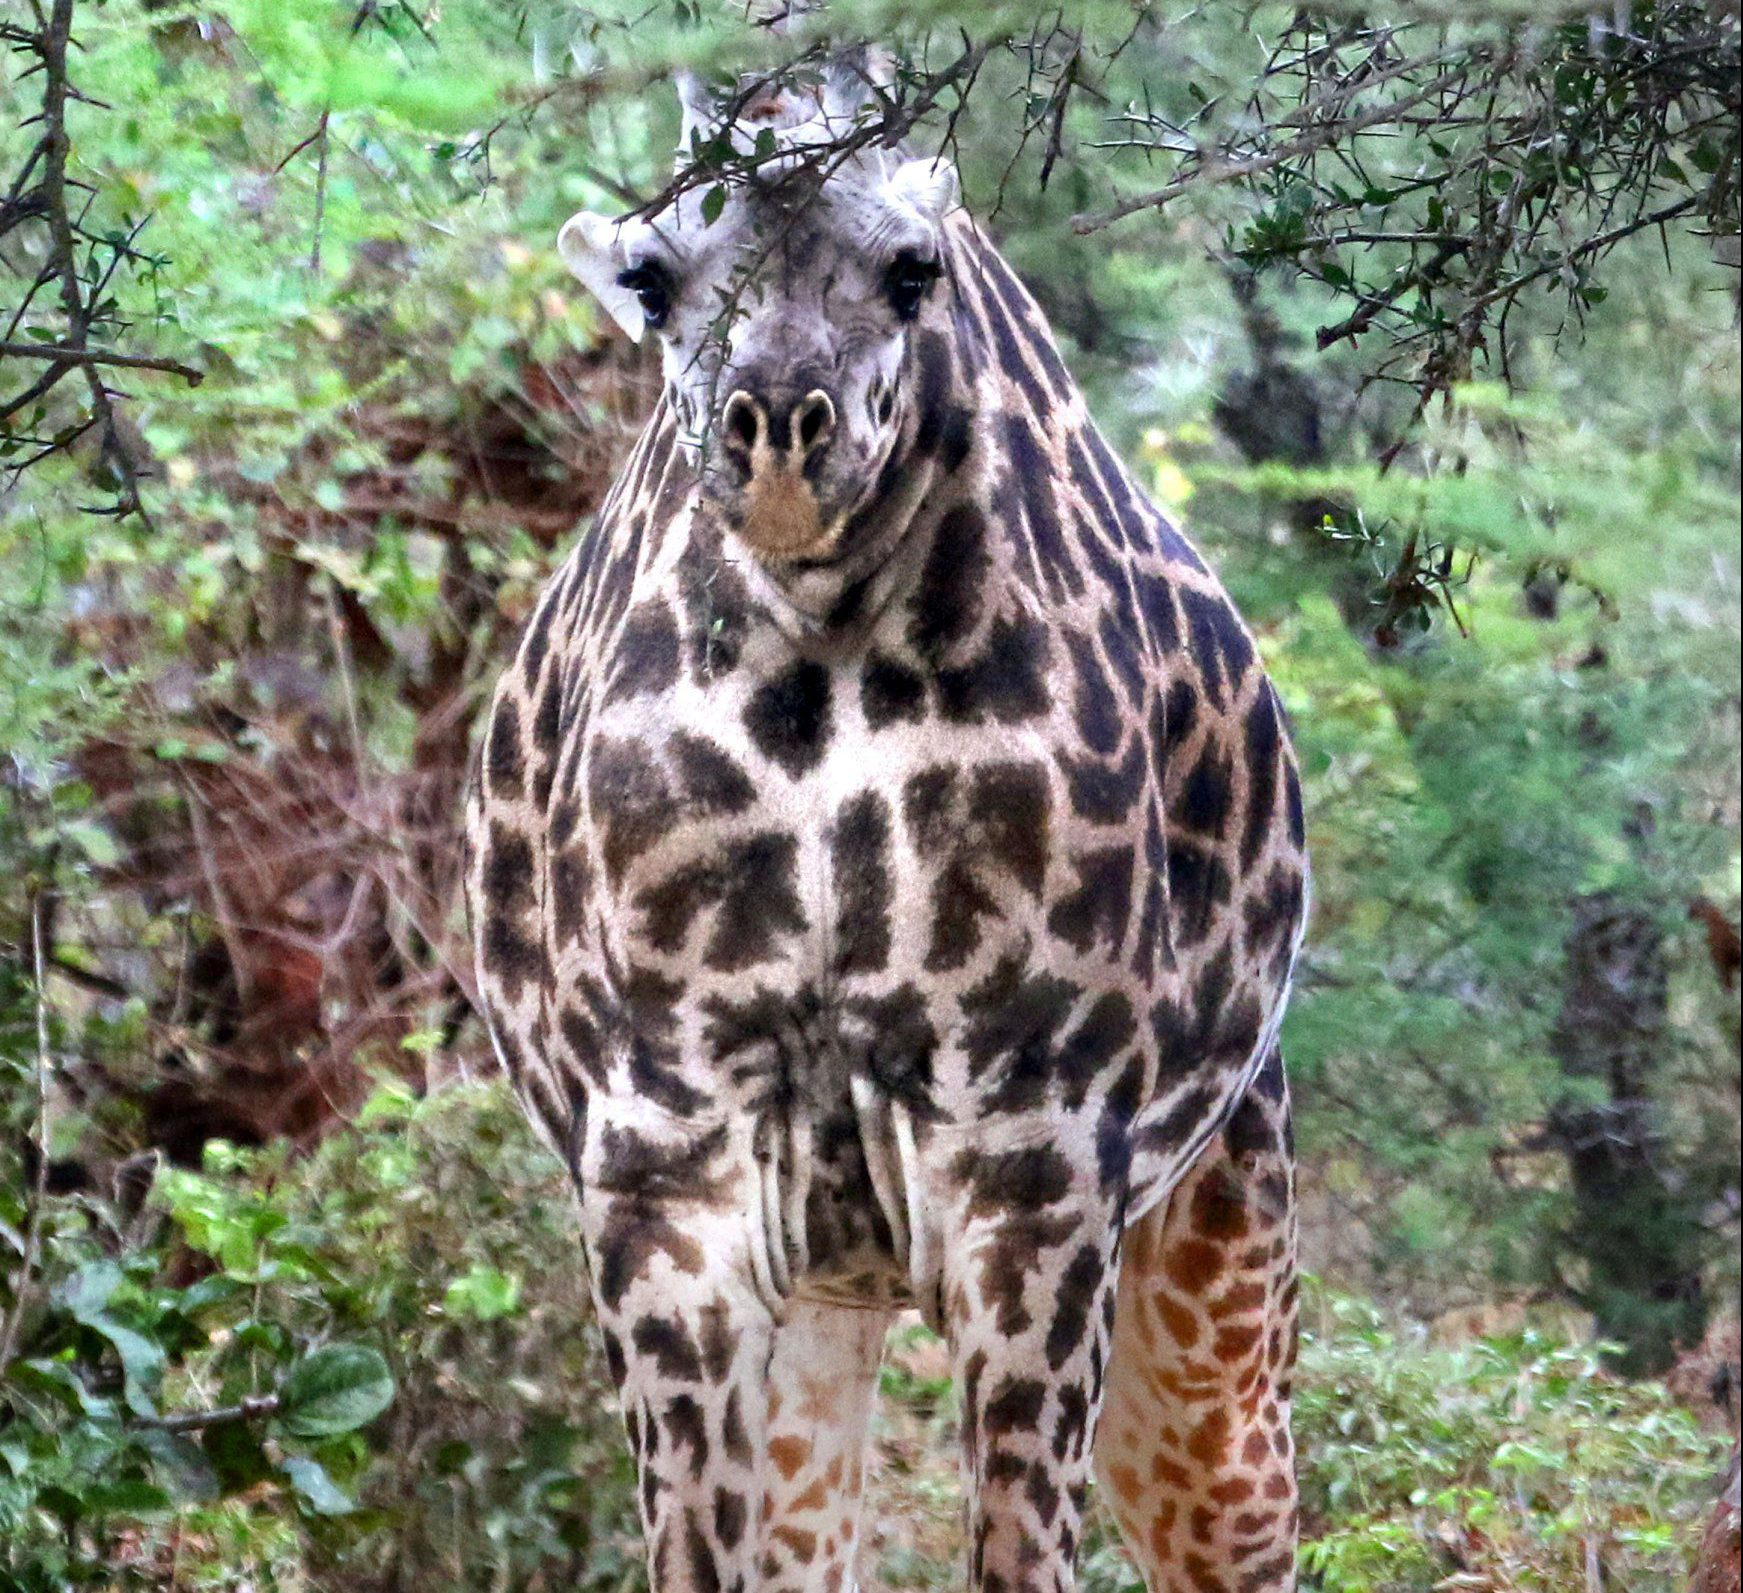 Cheeky giraffe can't wind her neck in because she doesn't appear to have one